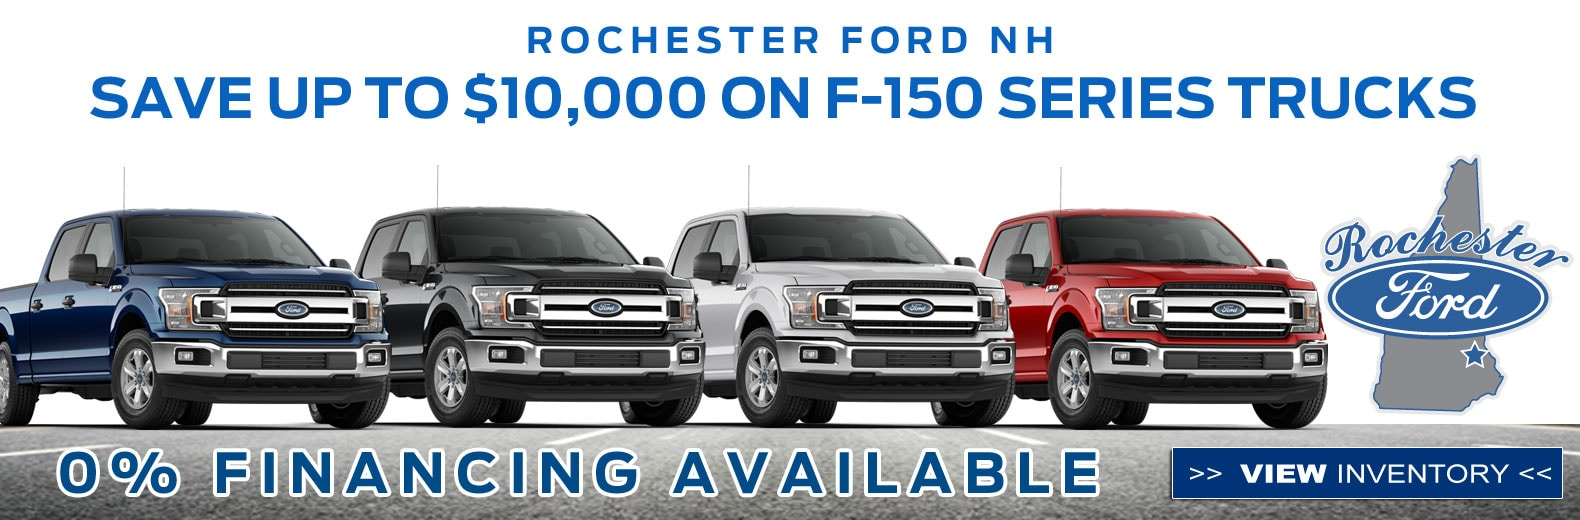 Used Car Parts In Rochester Nh